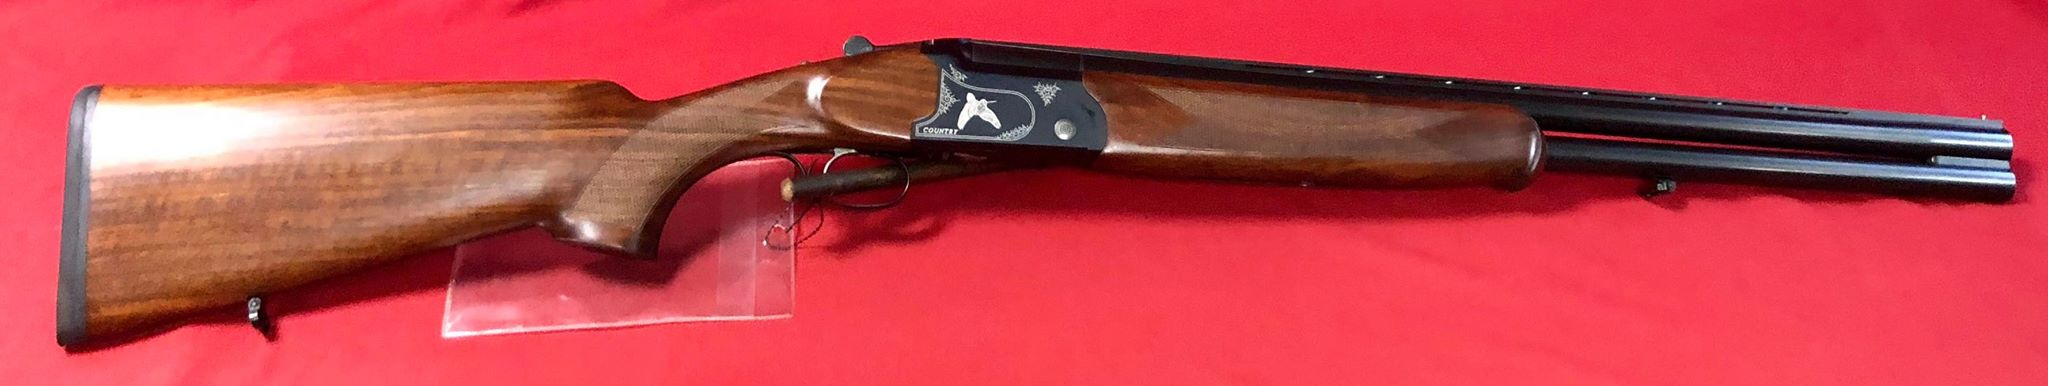 Fusil Contry Becassier 12/76